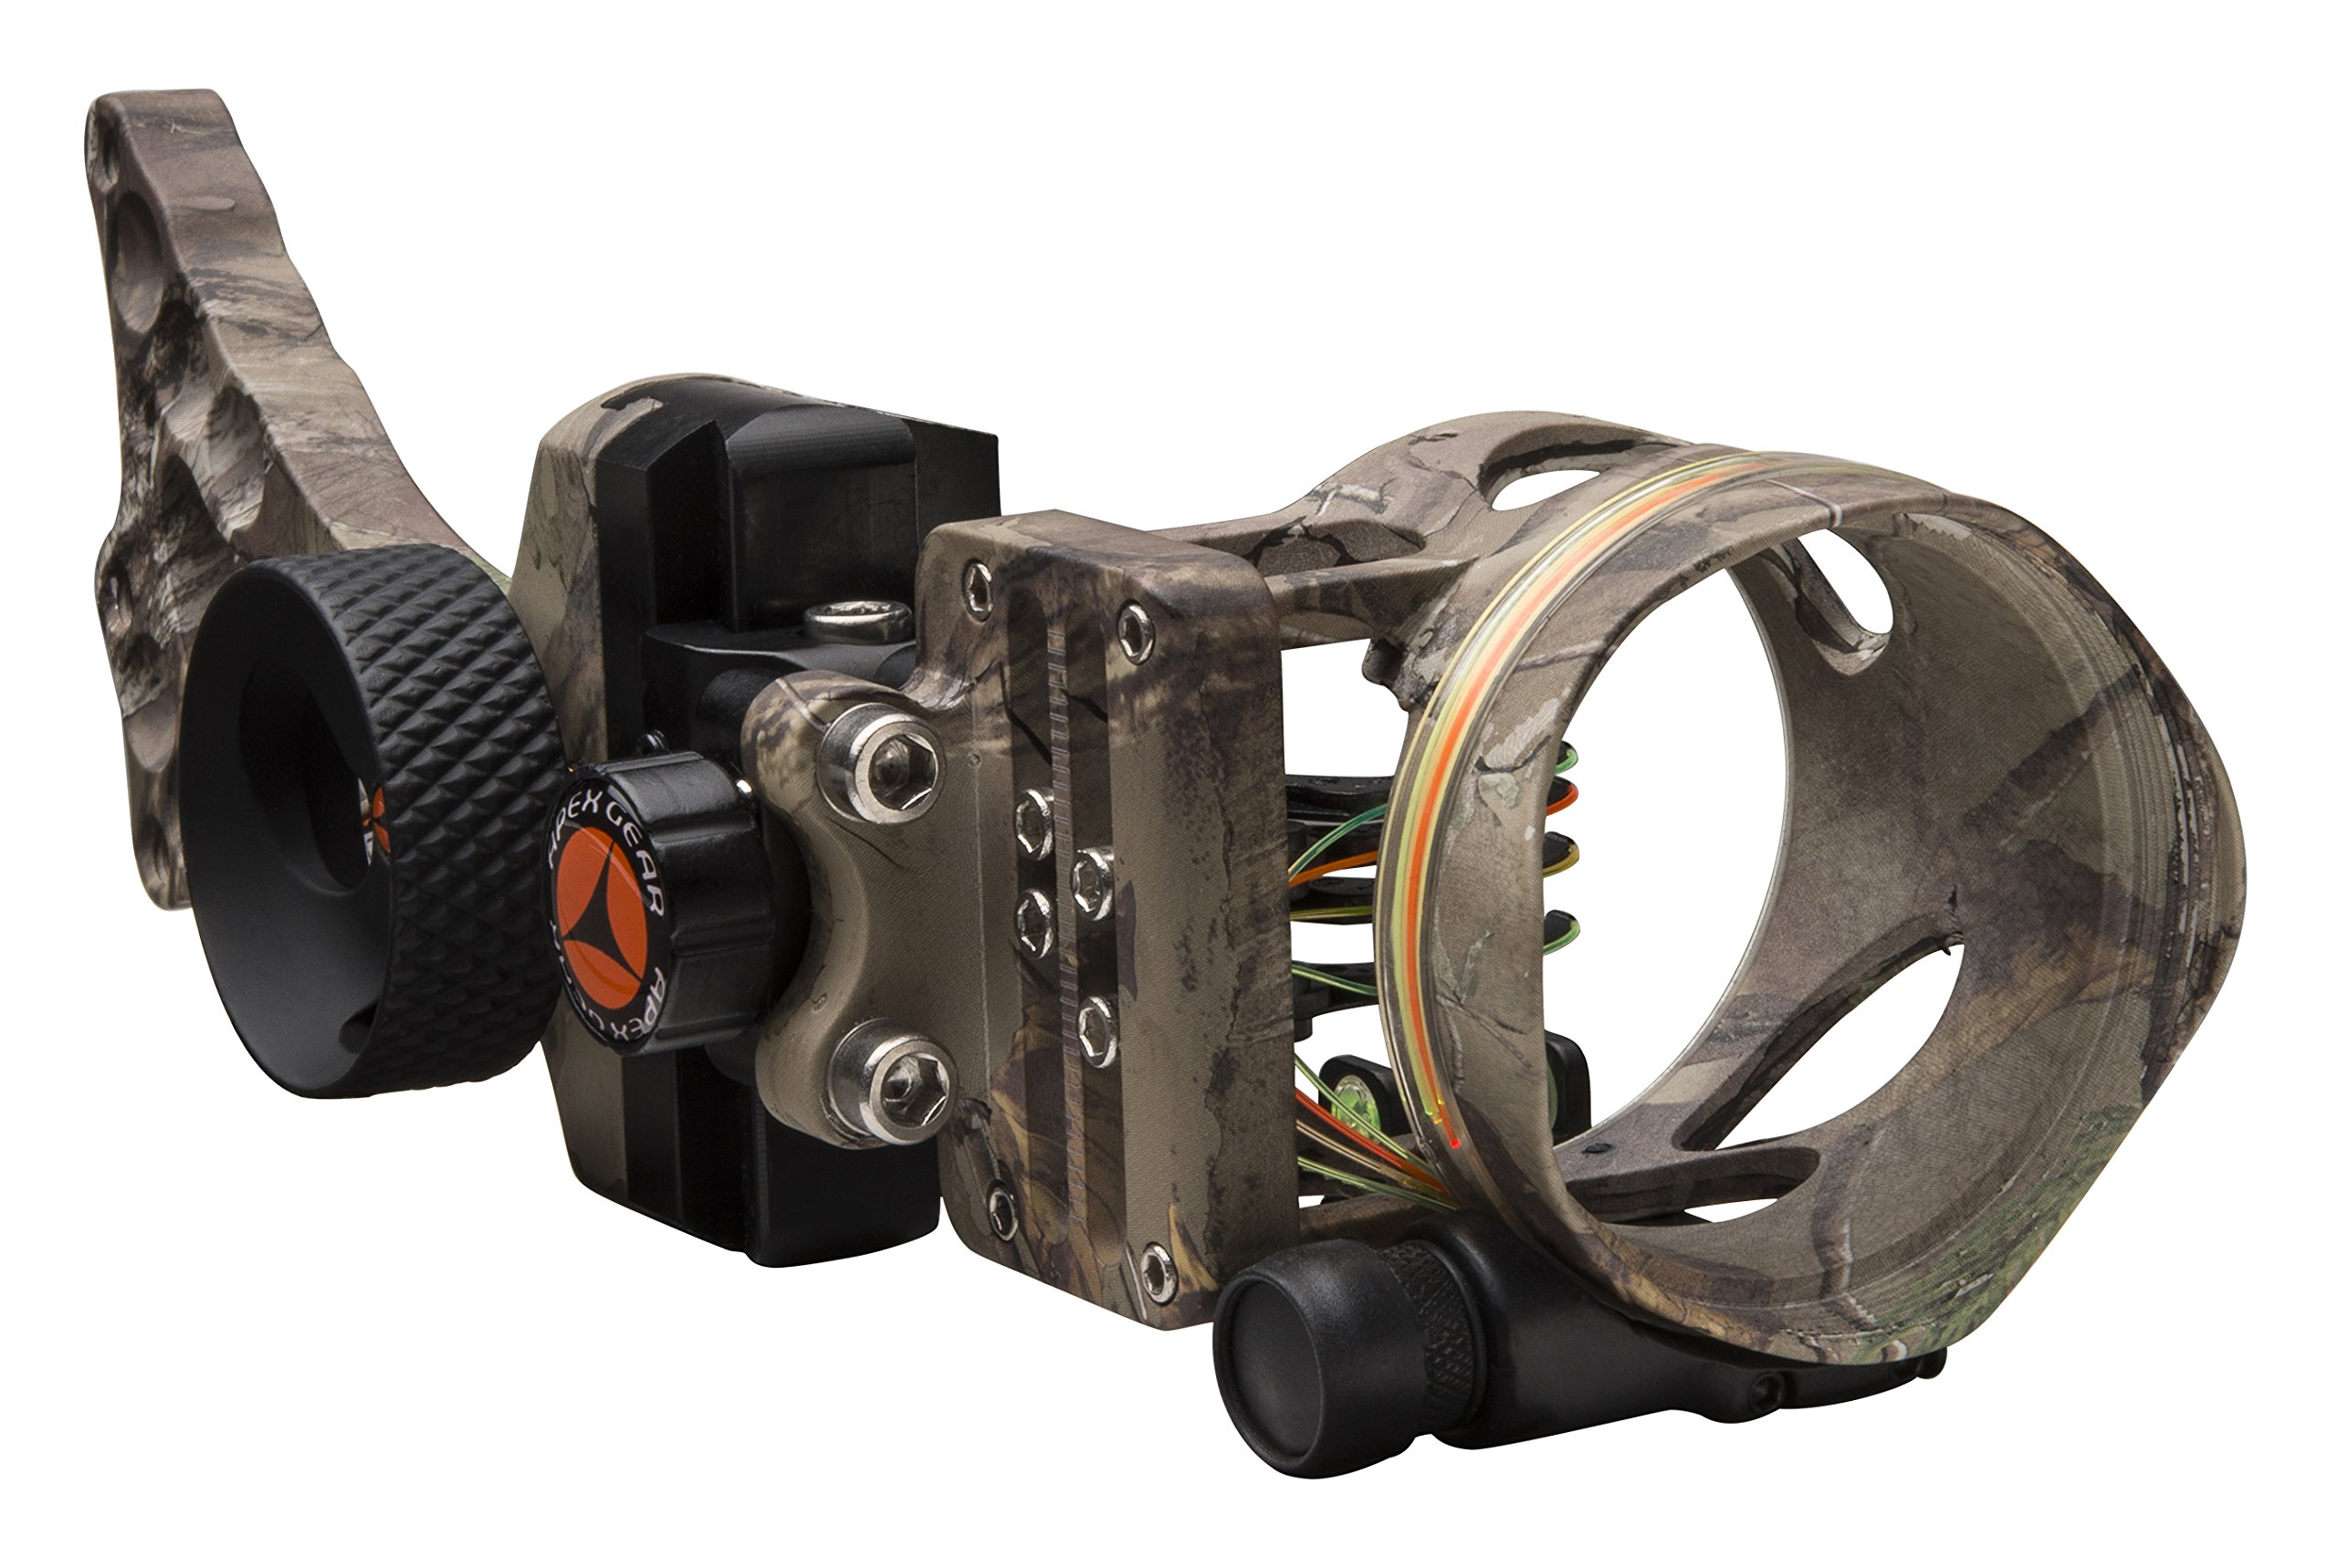 APEX GEAR Covert 4 Pin .019 Right/Left Hand Sight, Realtree Xtra